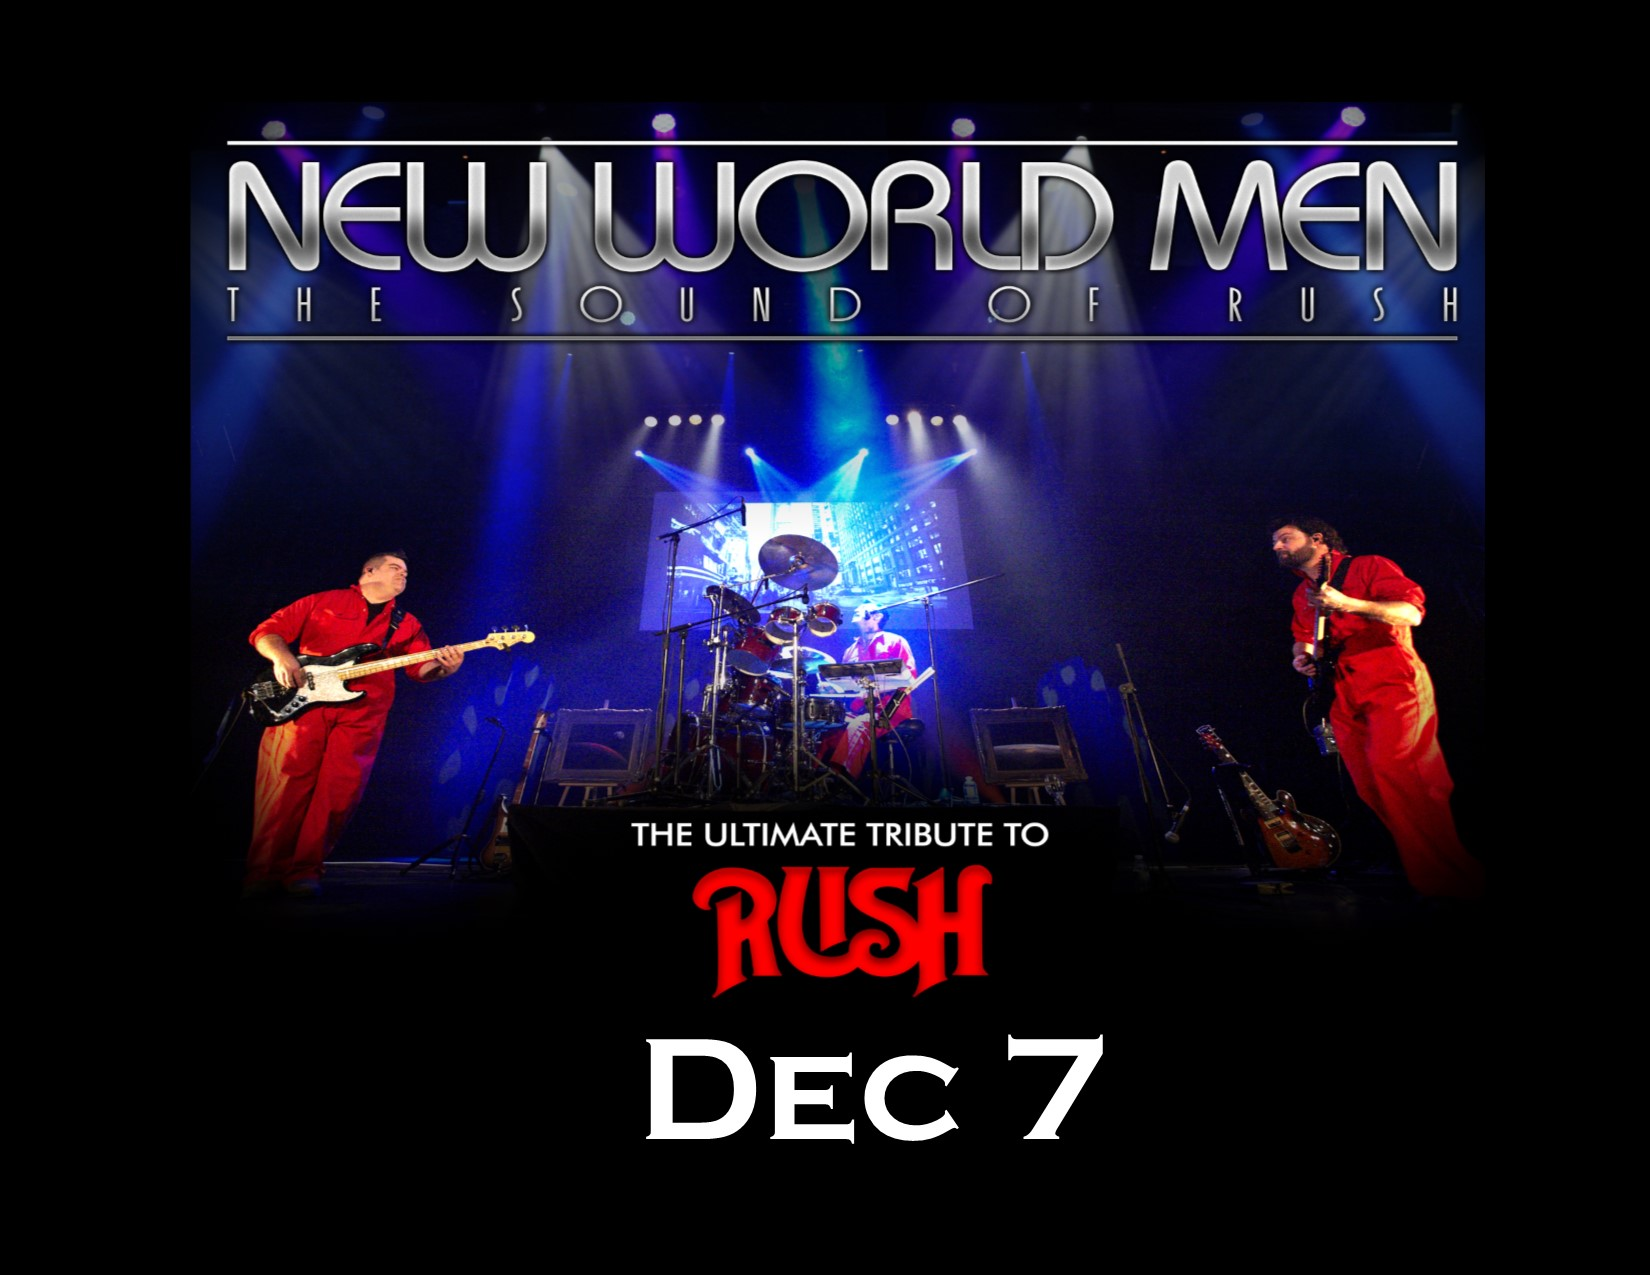 New World Men - A tribute to Rush